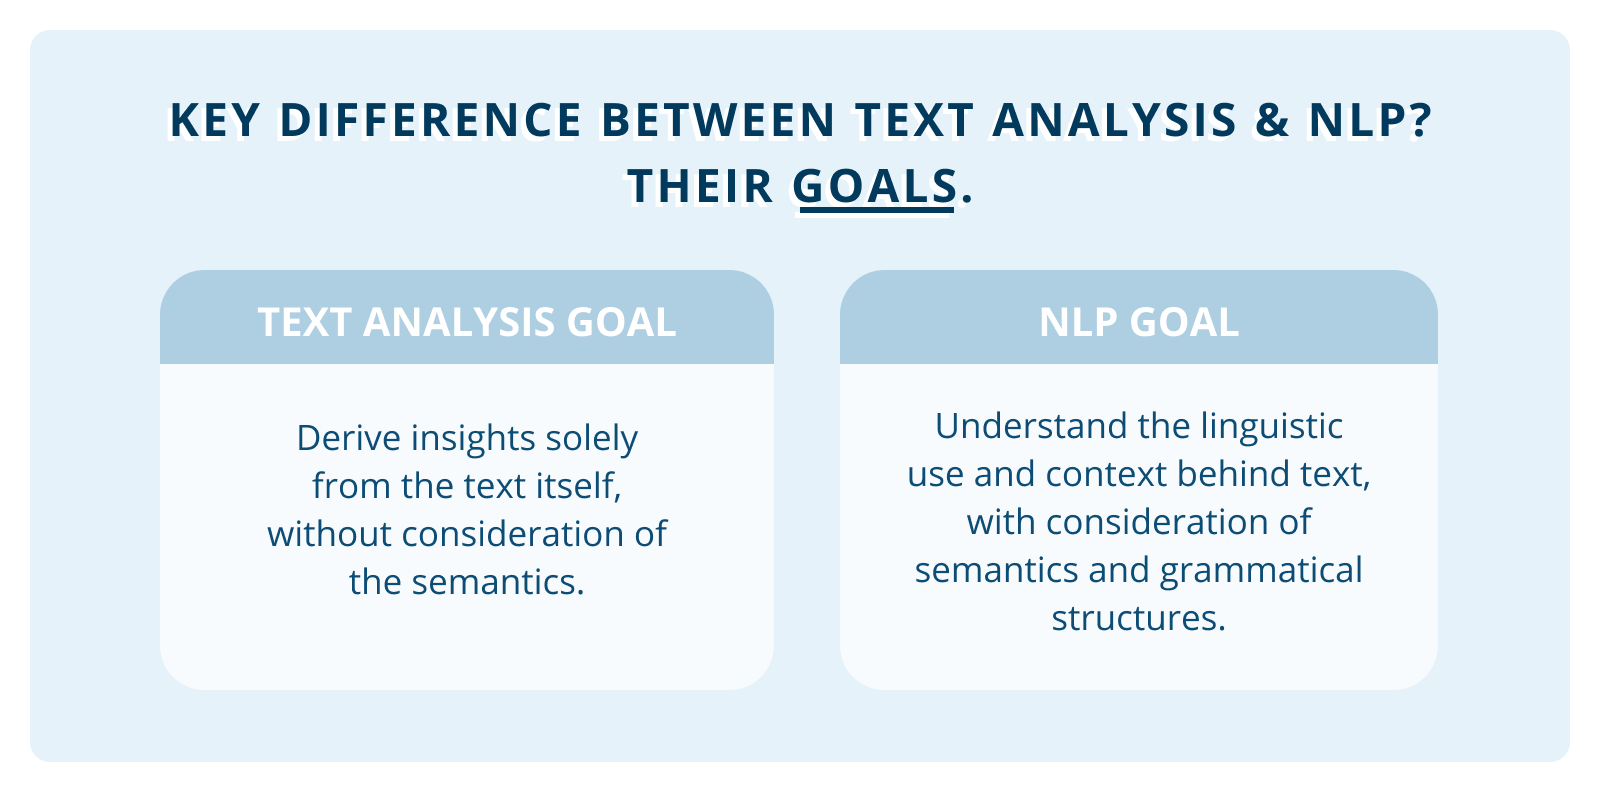 text analysis natural language processing difference pure speech technology conversational ai